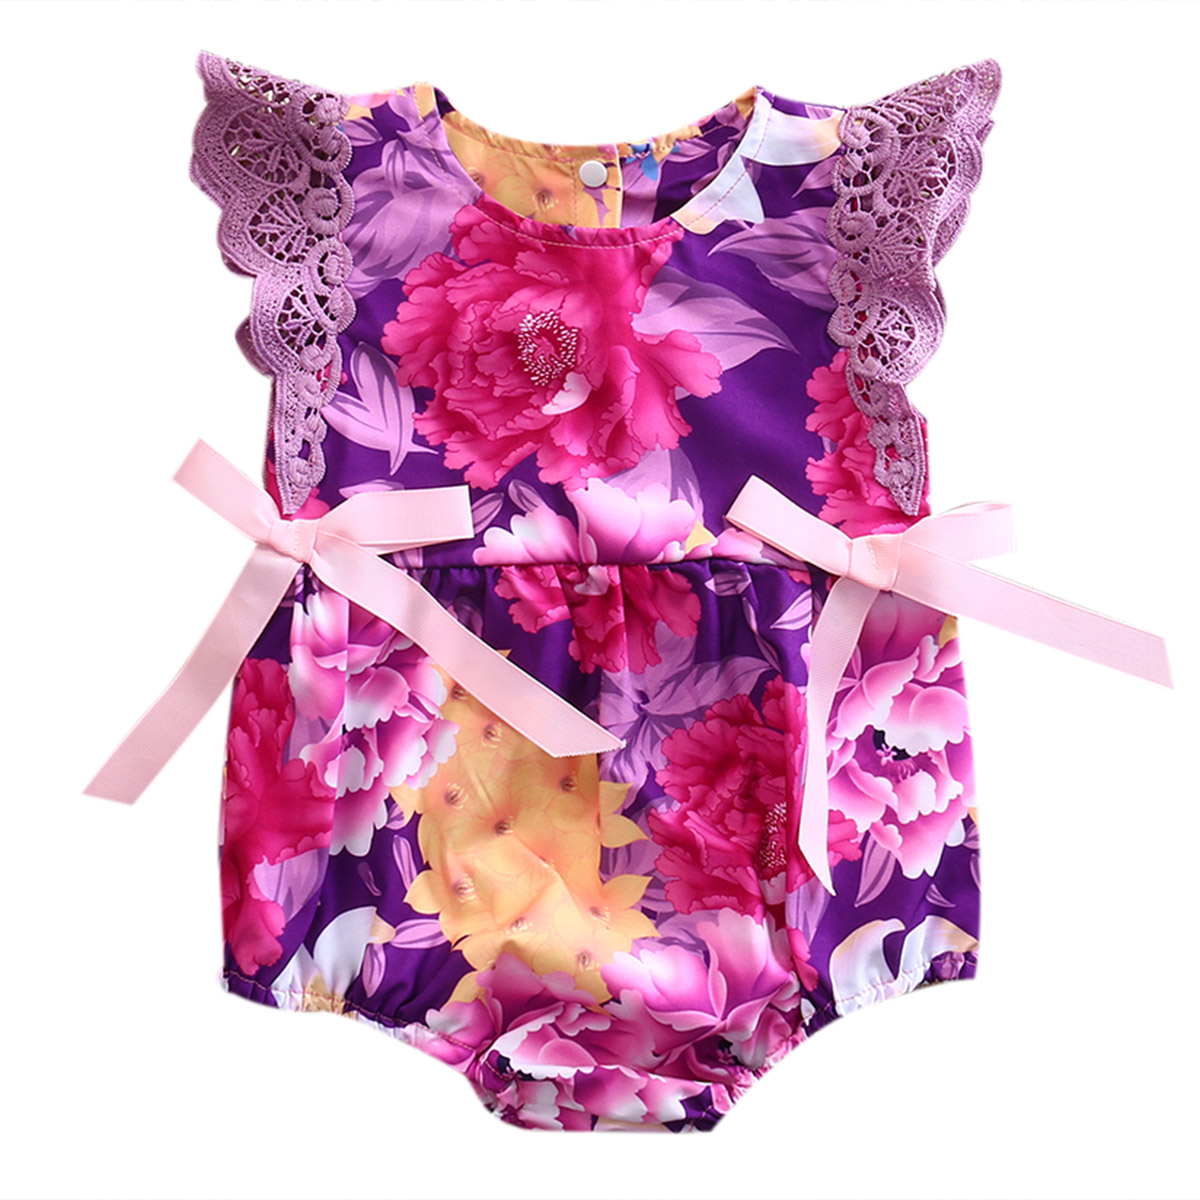 Cute Newborn Baby Girl Lace Floral Romper 2017 Summer Infant Bebes Toddler Kids Jumpsuit Outfits Sunsuit Children Clothes 0-24M 3pcs set newborn infant baby boy girl clothes 2017 summer short sleeve leopard floral romper bodysuit headband shoes outfits